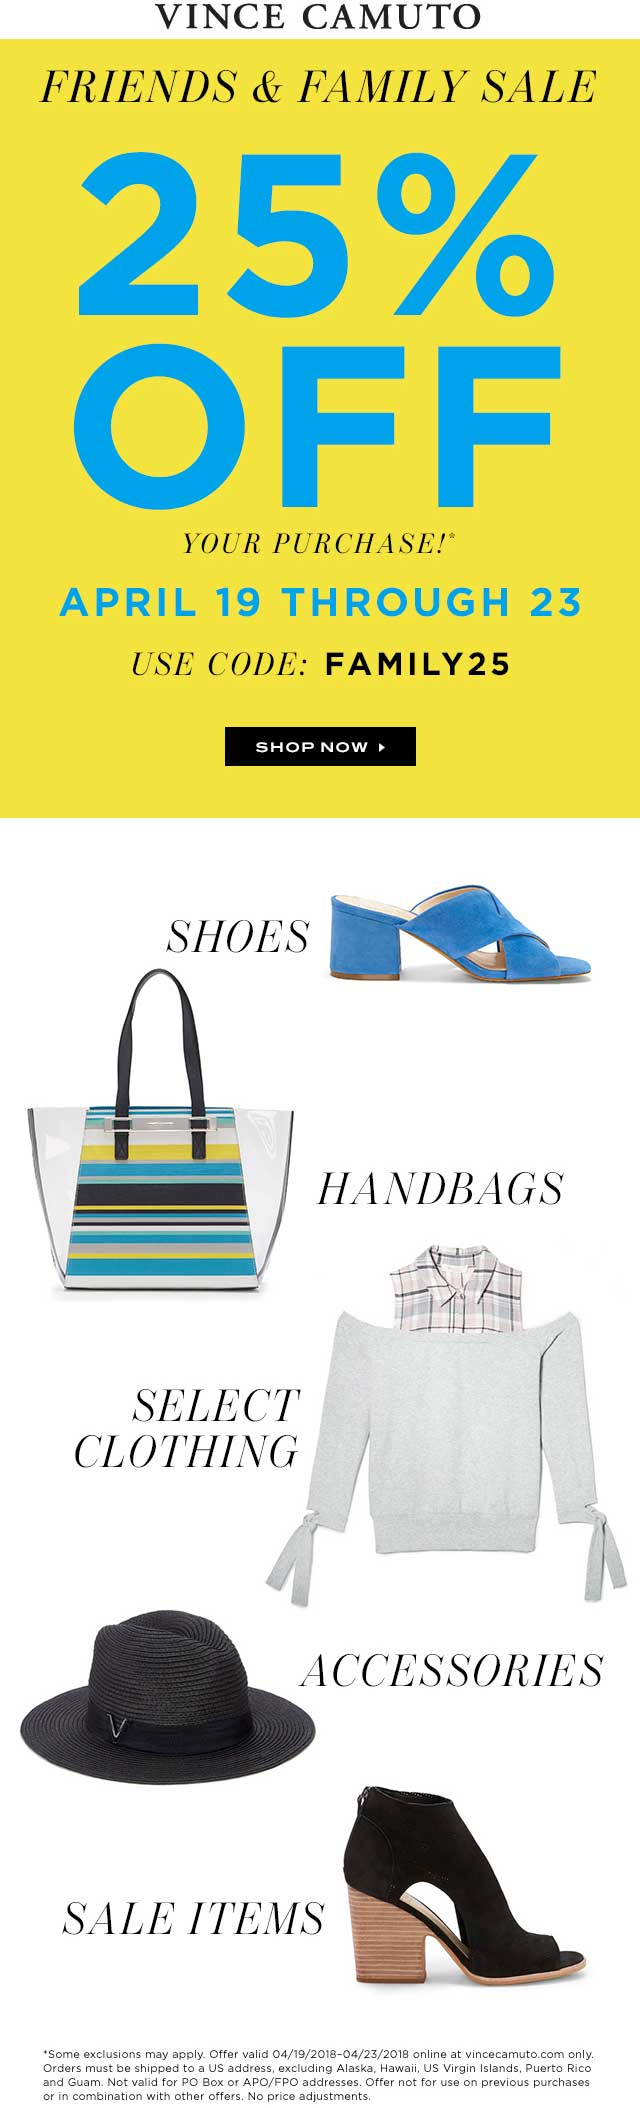 Vince Camuto Coupon August 2018 25% off at Vince Camuto, or online via promo code FAMILY25